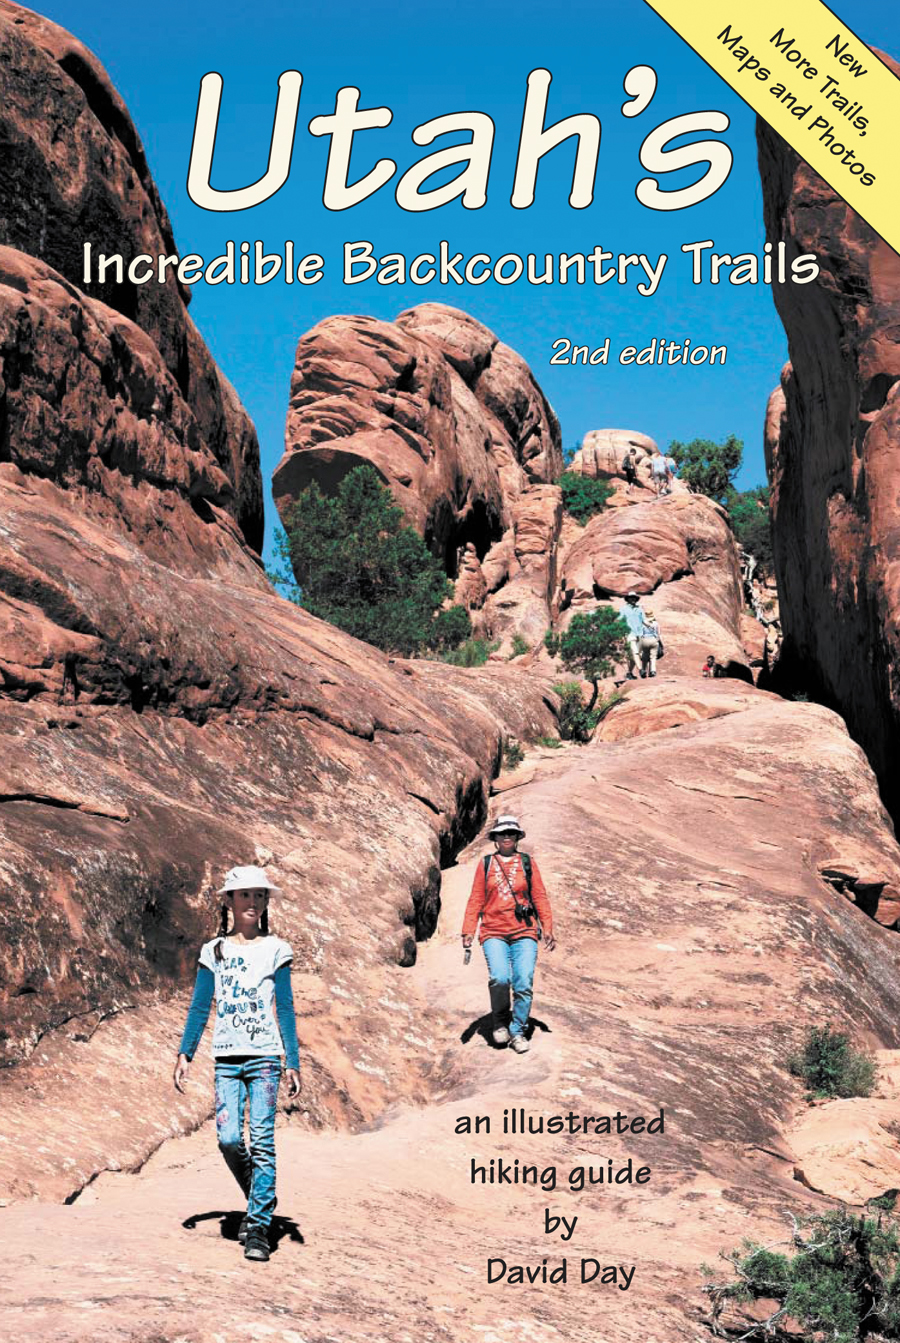 Utah's Incredible Backcountry Trails